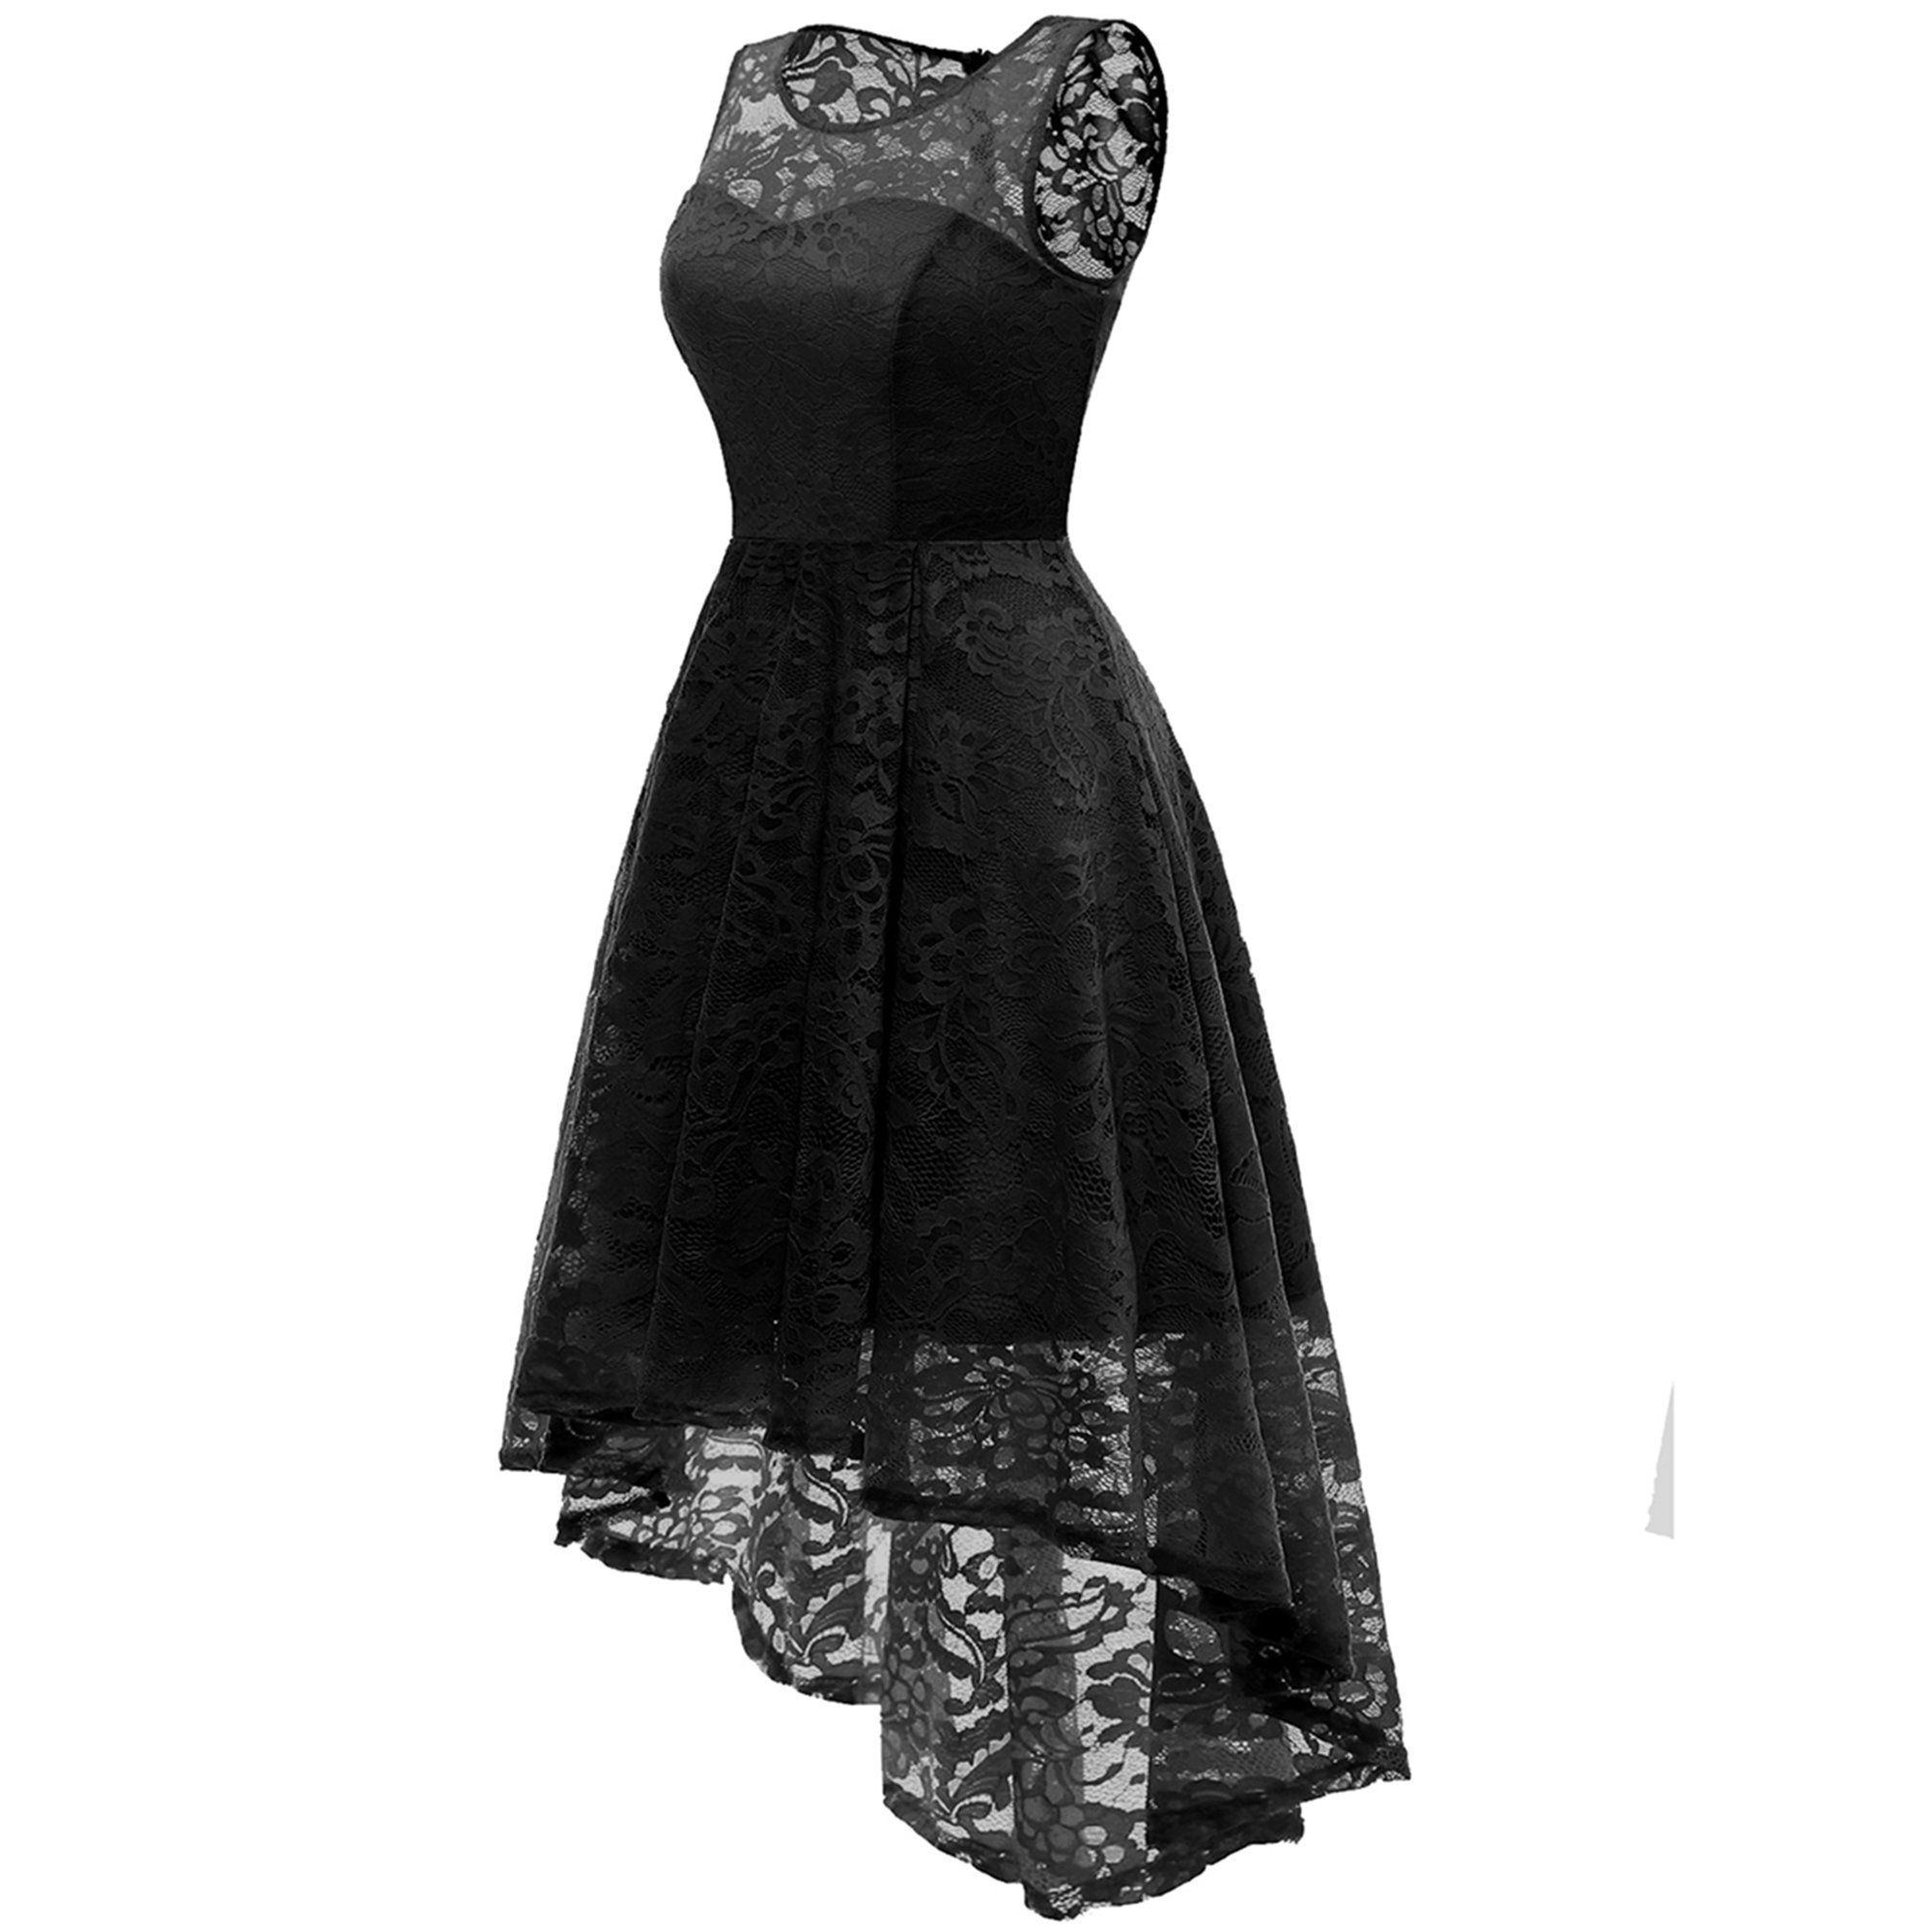 Market In The Box Market In The Box Women S Lace Dress Vintage Floral Sleeveless Hi Lo Formal Party Dress Asymmetrical Cocktail Formal Swing Dress Walmart C In 2021 Lace Dress Vintage [ 2000 x 2000 Pixel ]